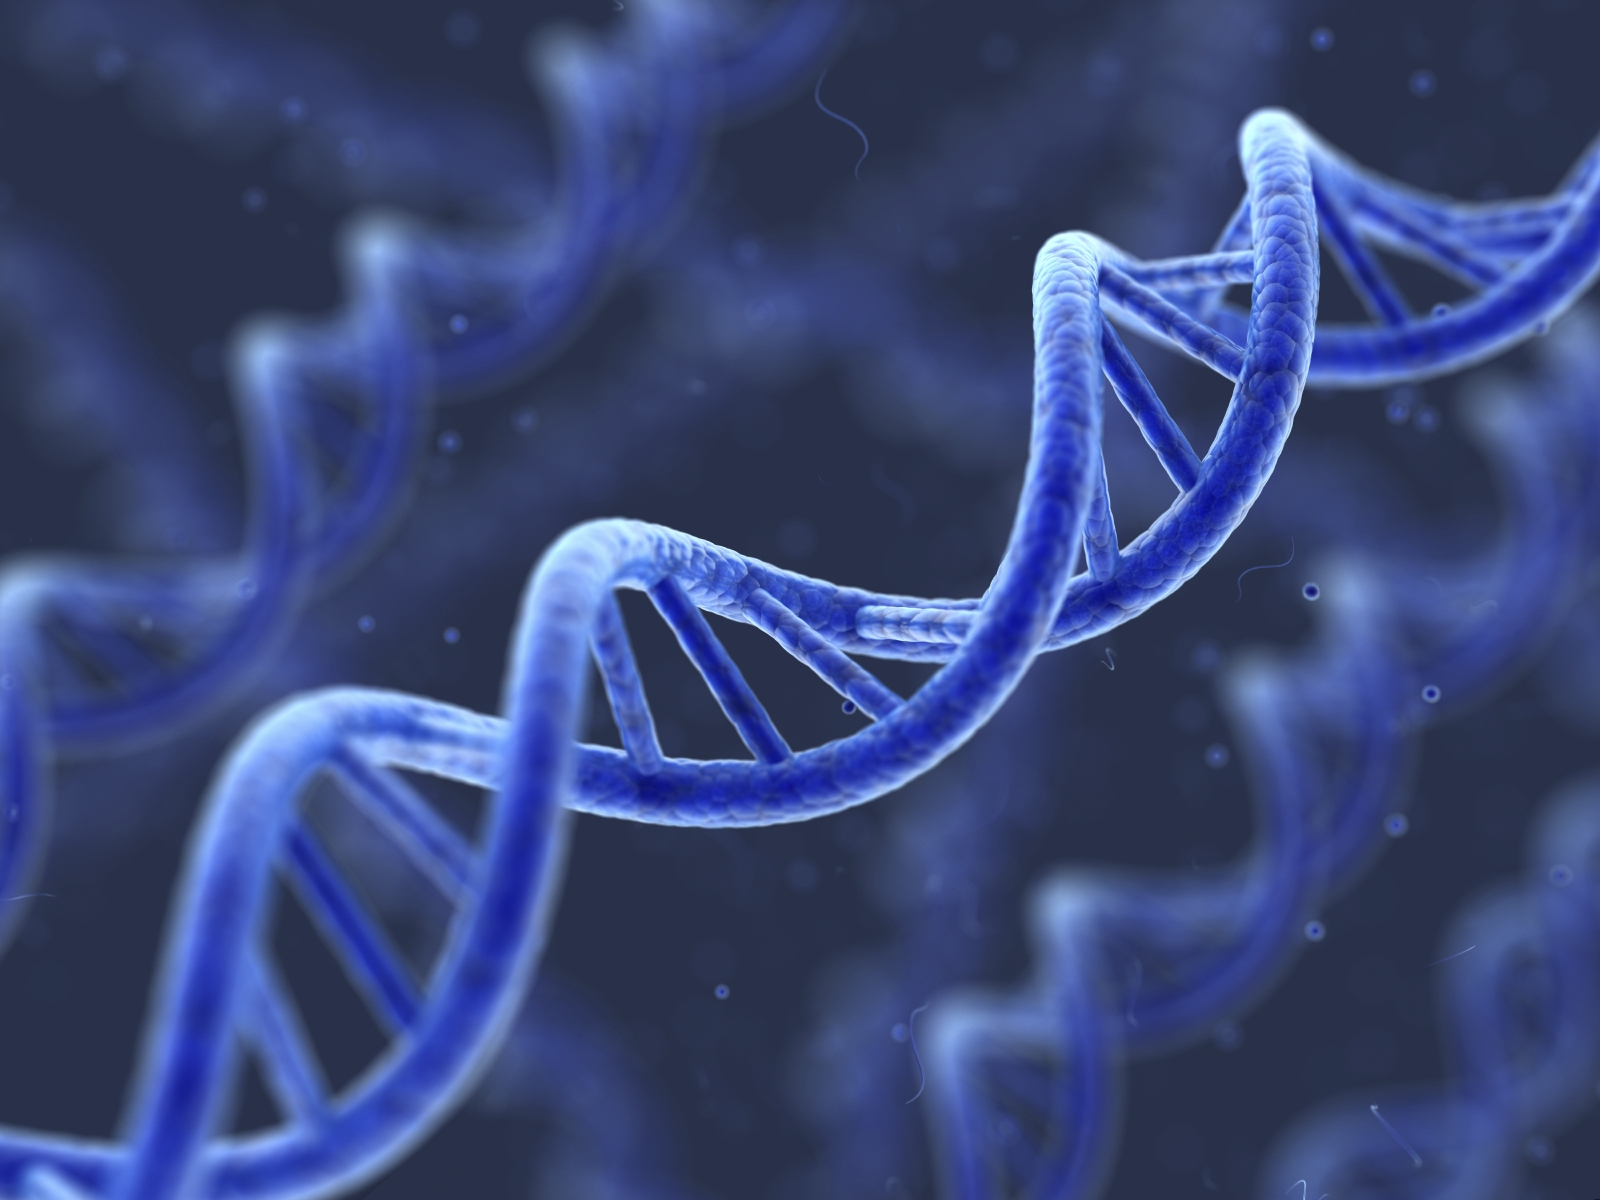 Genetic DNA Computer Wallpaper 50092 1600x1200px 1600x1200